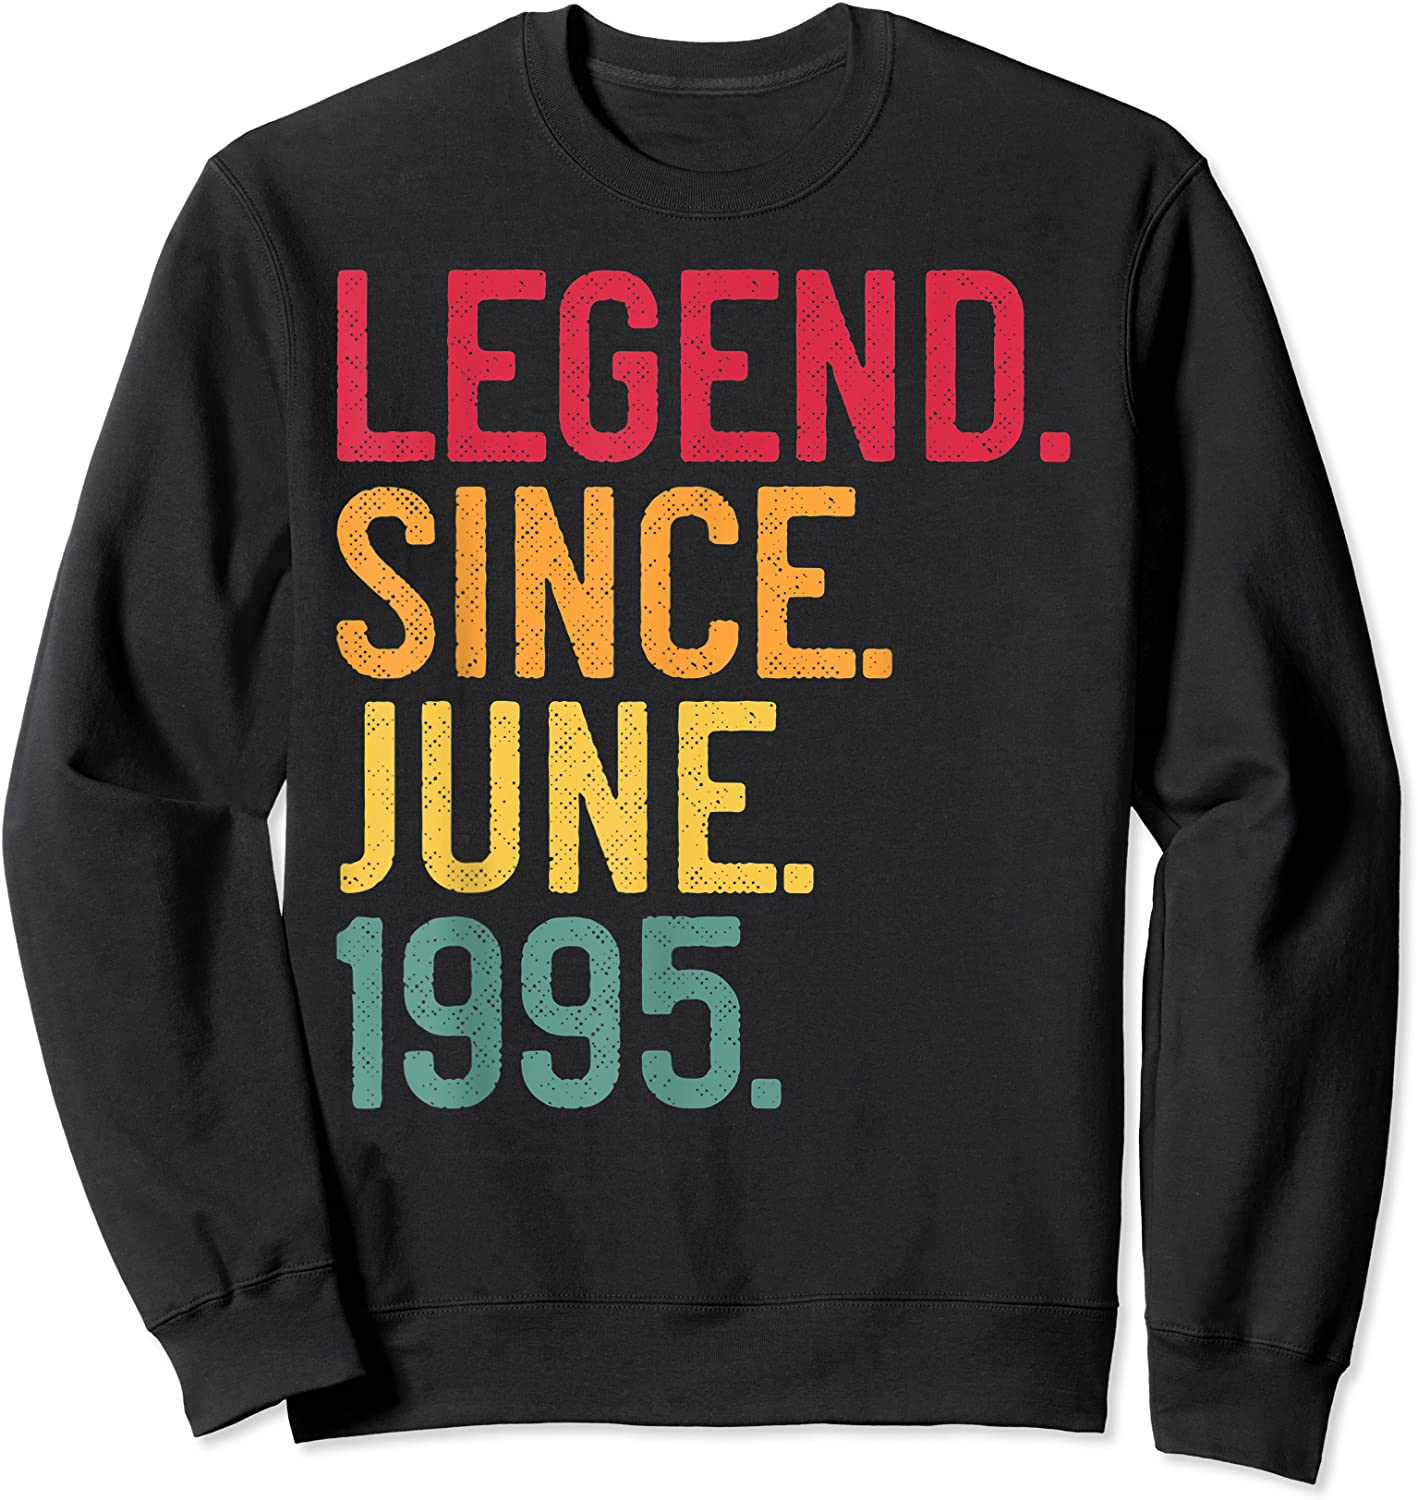 Legend Since June 1995 26th Birthday 26 Years Old Vintage T-shirt Crewneck Sweater